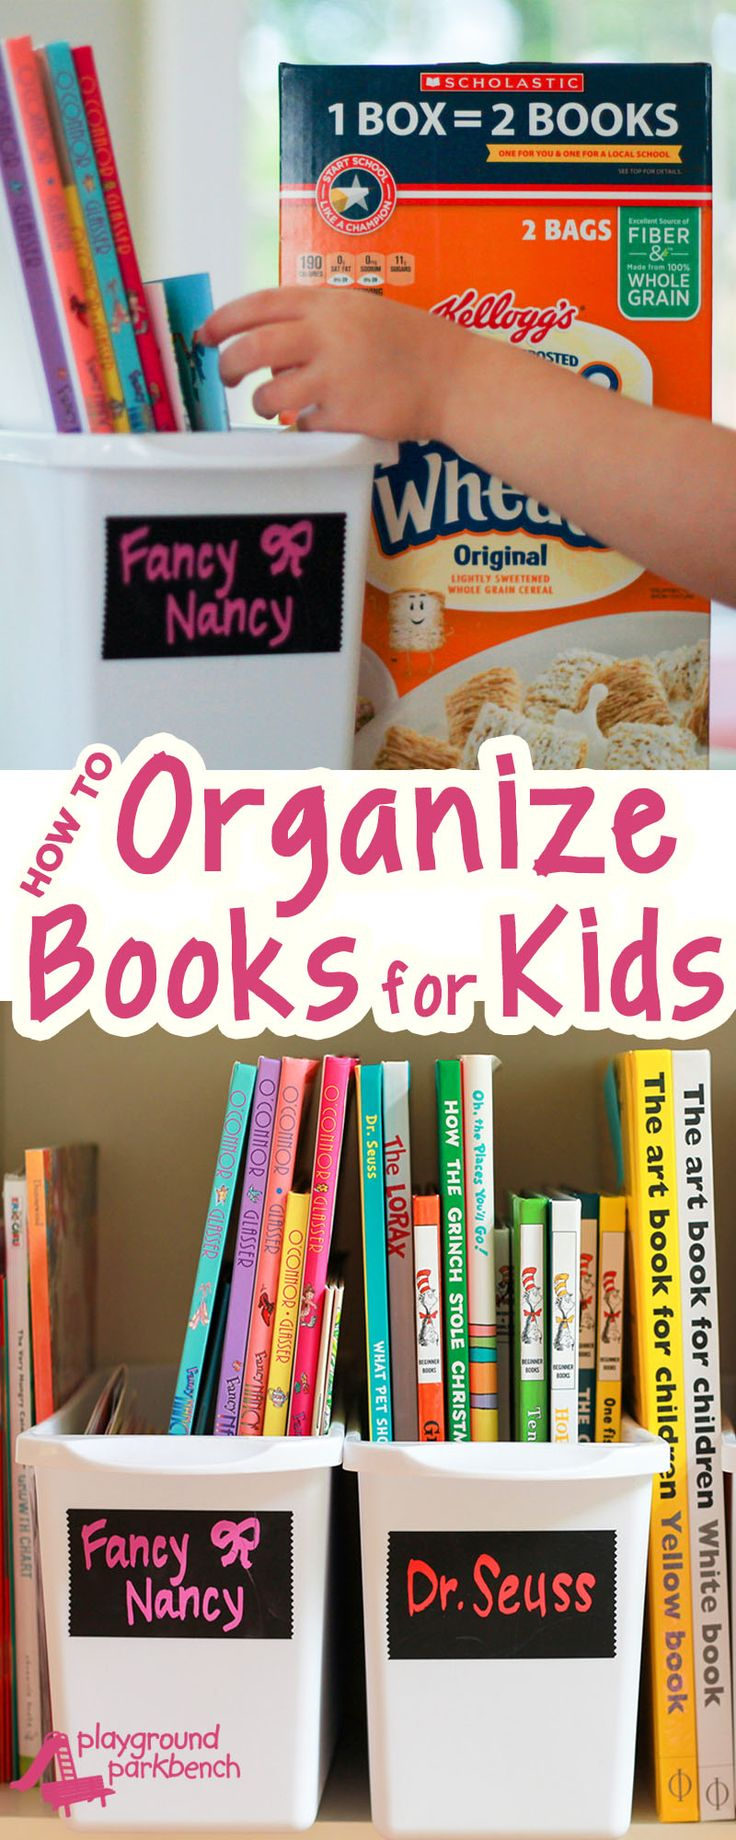 104 best ideas for storing childrens books images on pinterest - Kids Book Pictures